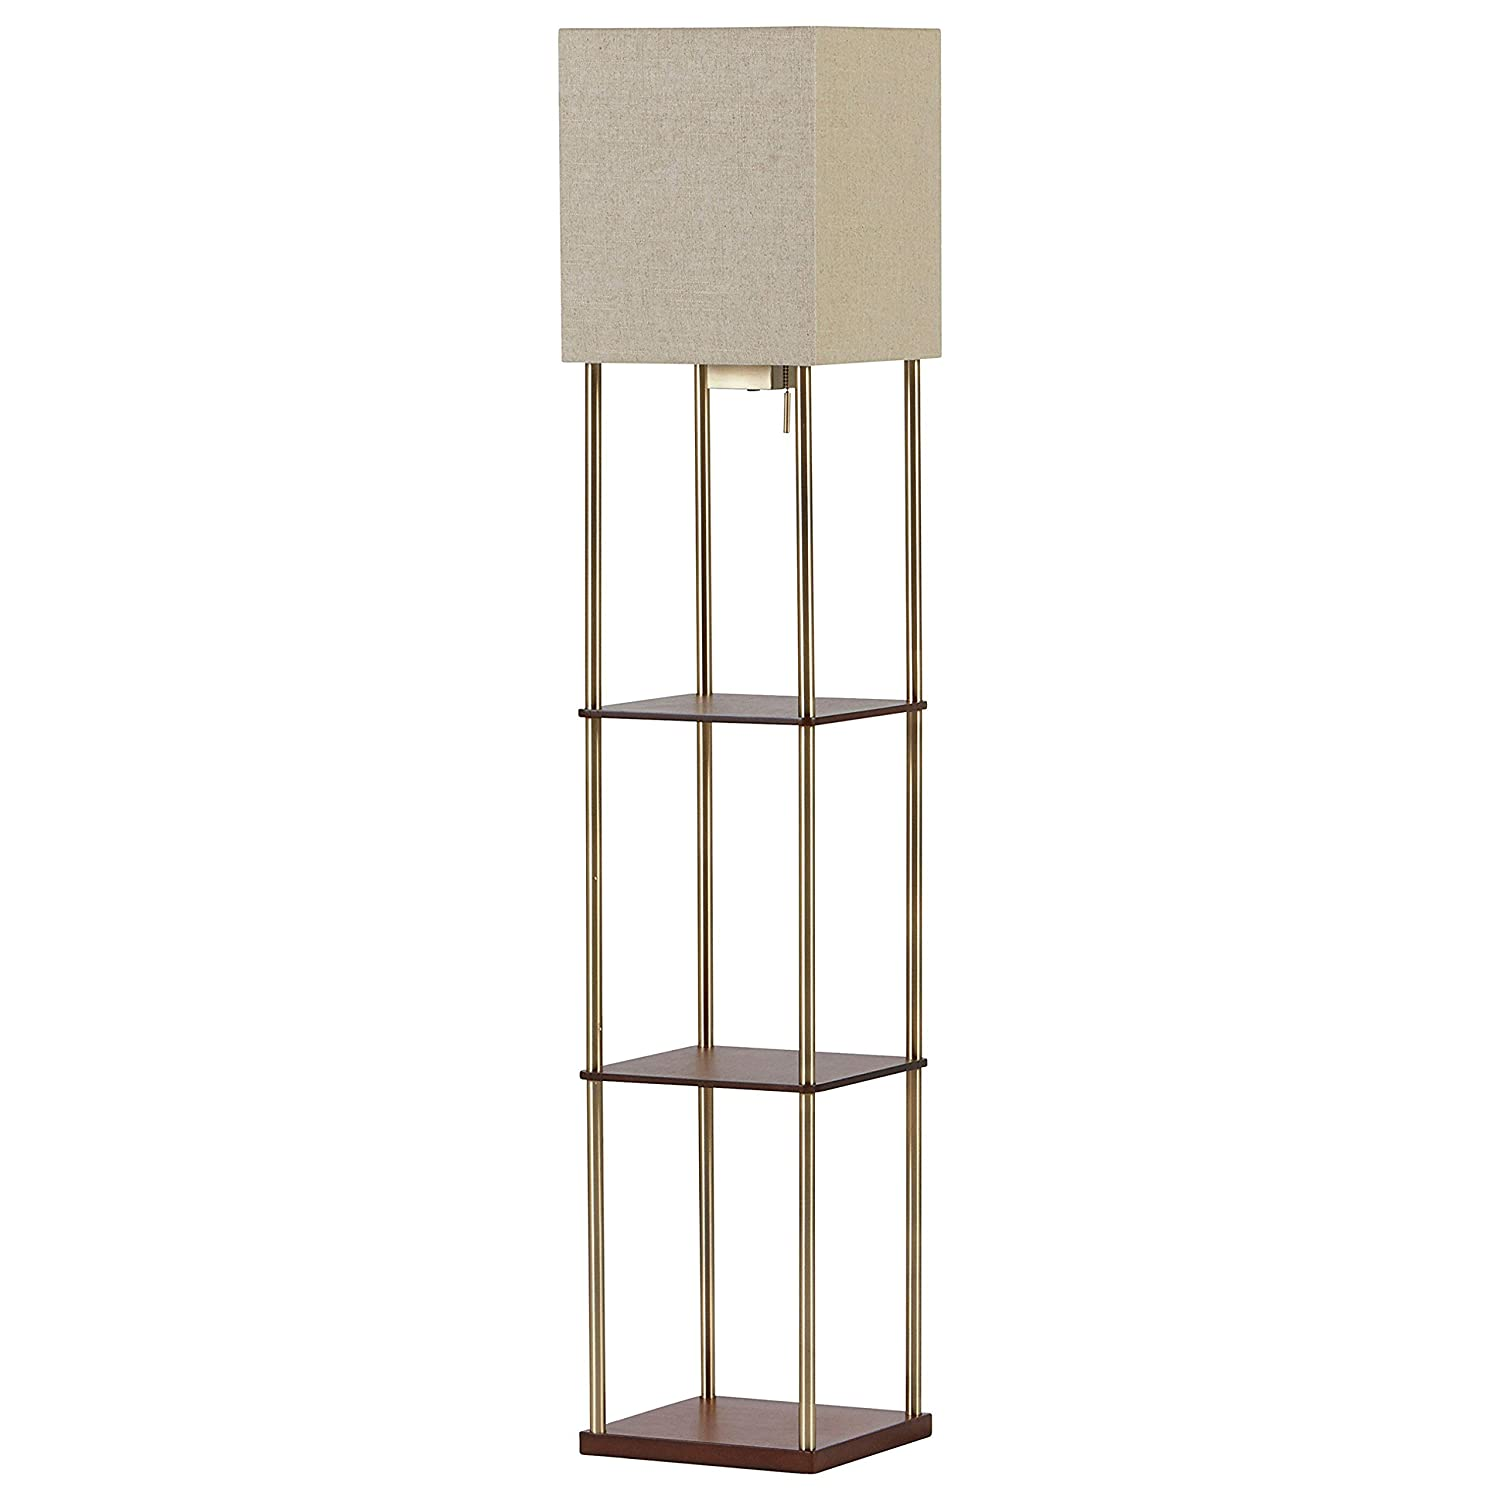 Rivet Olive 4 Wood Shelf Standing Floor Lamp With Light Bulb and USB Charging Station – 11.8 x 11.8 x 62 Inches, Brass